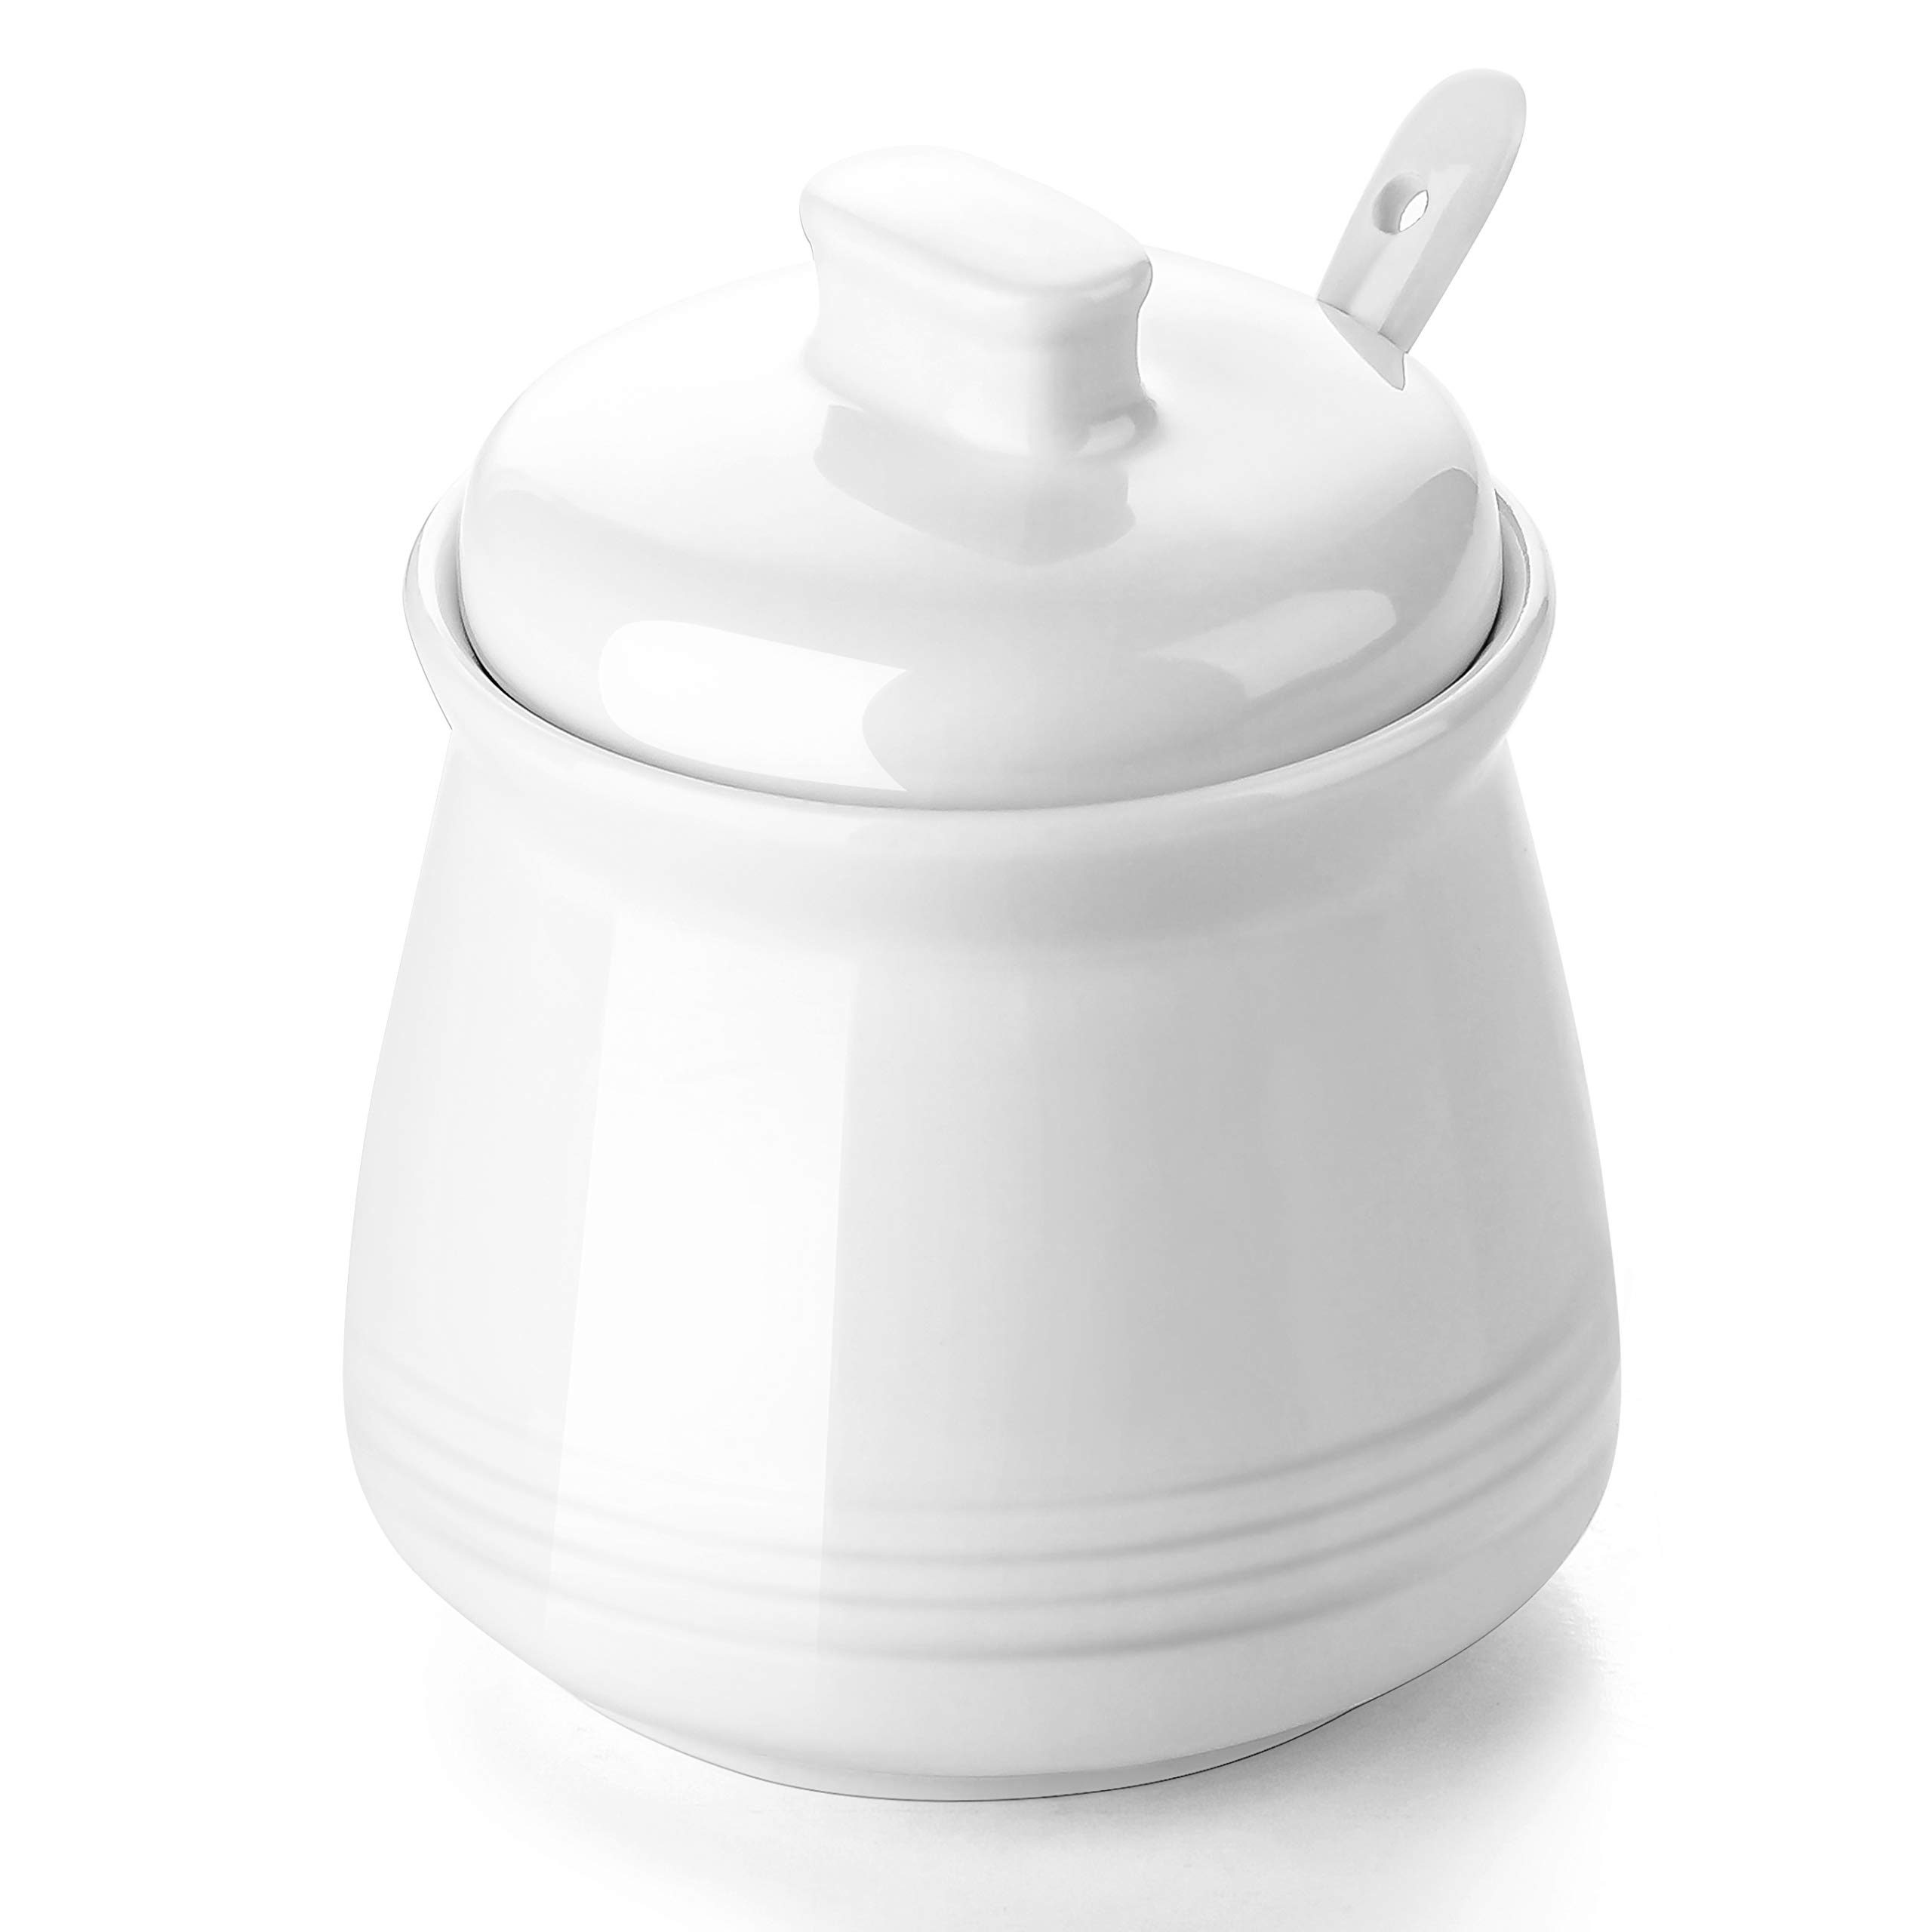 DOWAN Porcelain Sugar Bowl with Spoon and Lid, Suit for Home or Restaurant, White, 12 Ounces